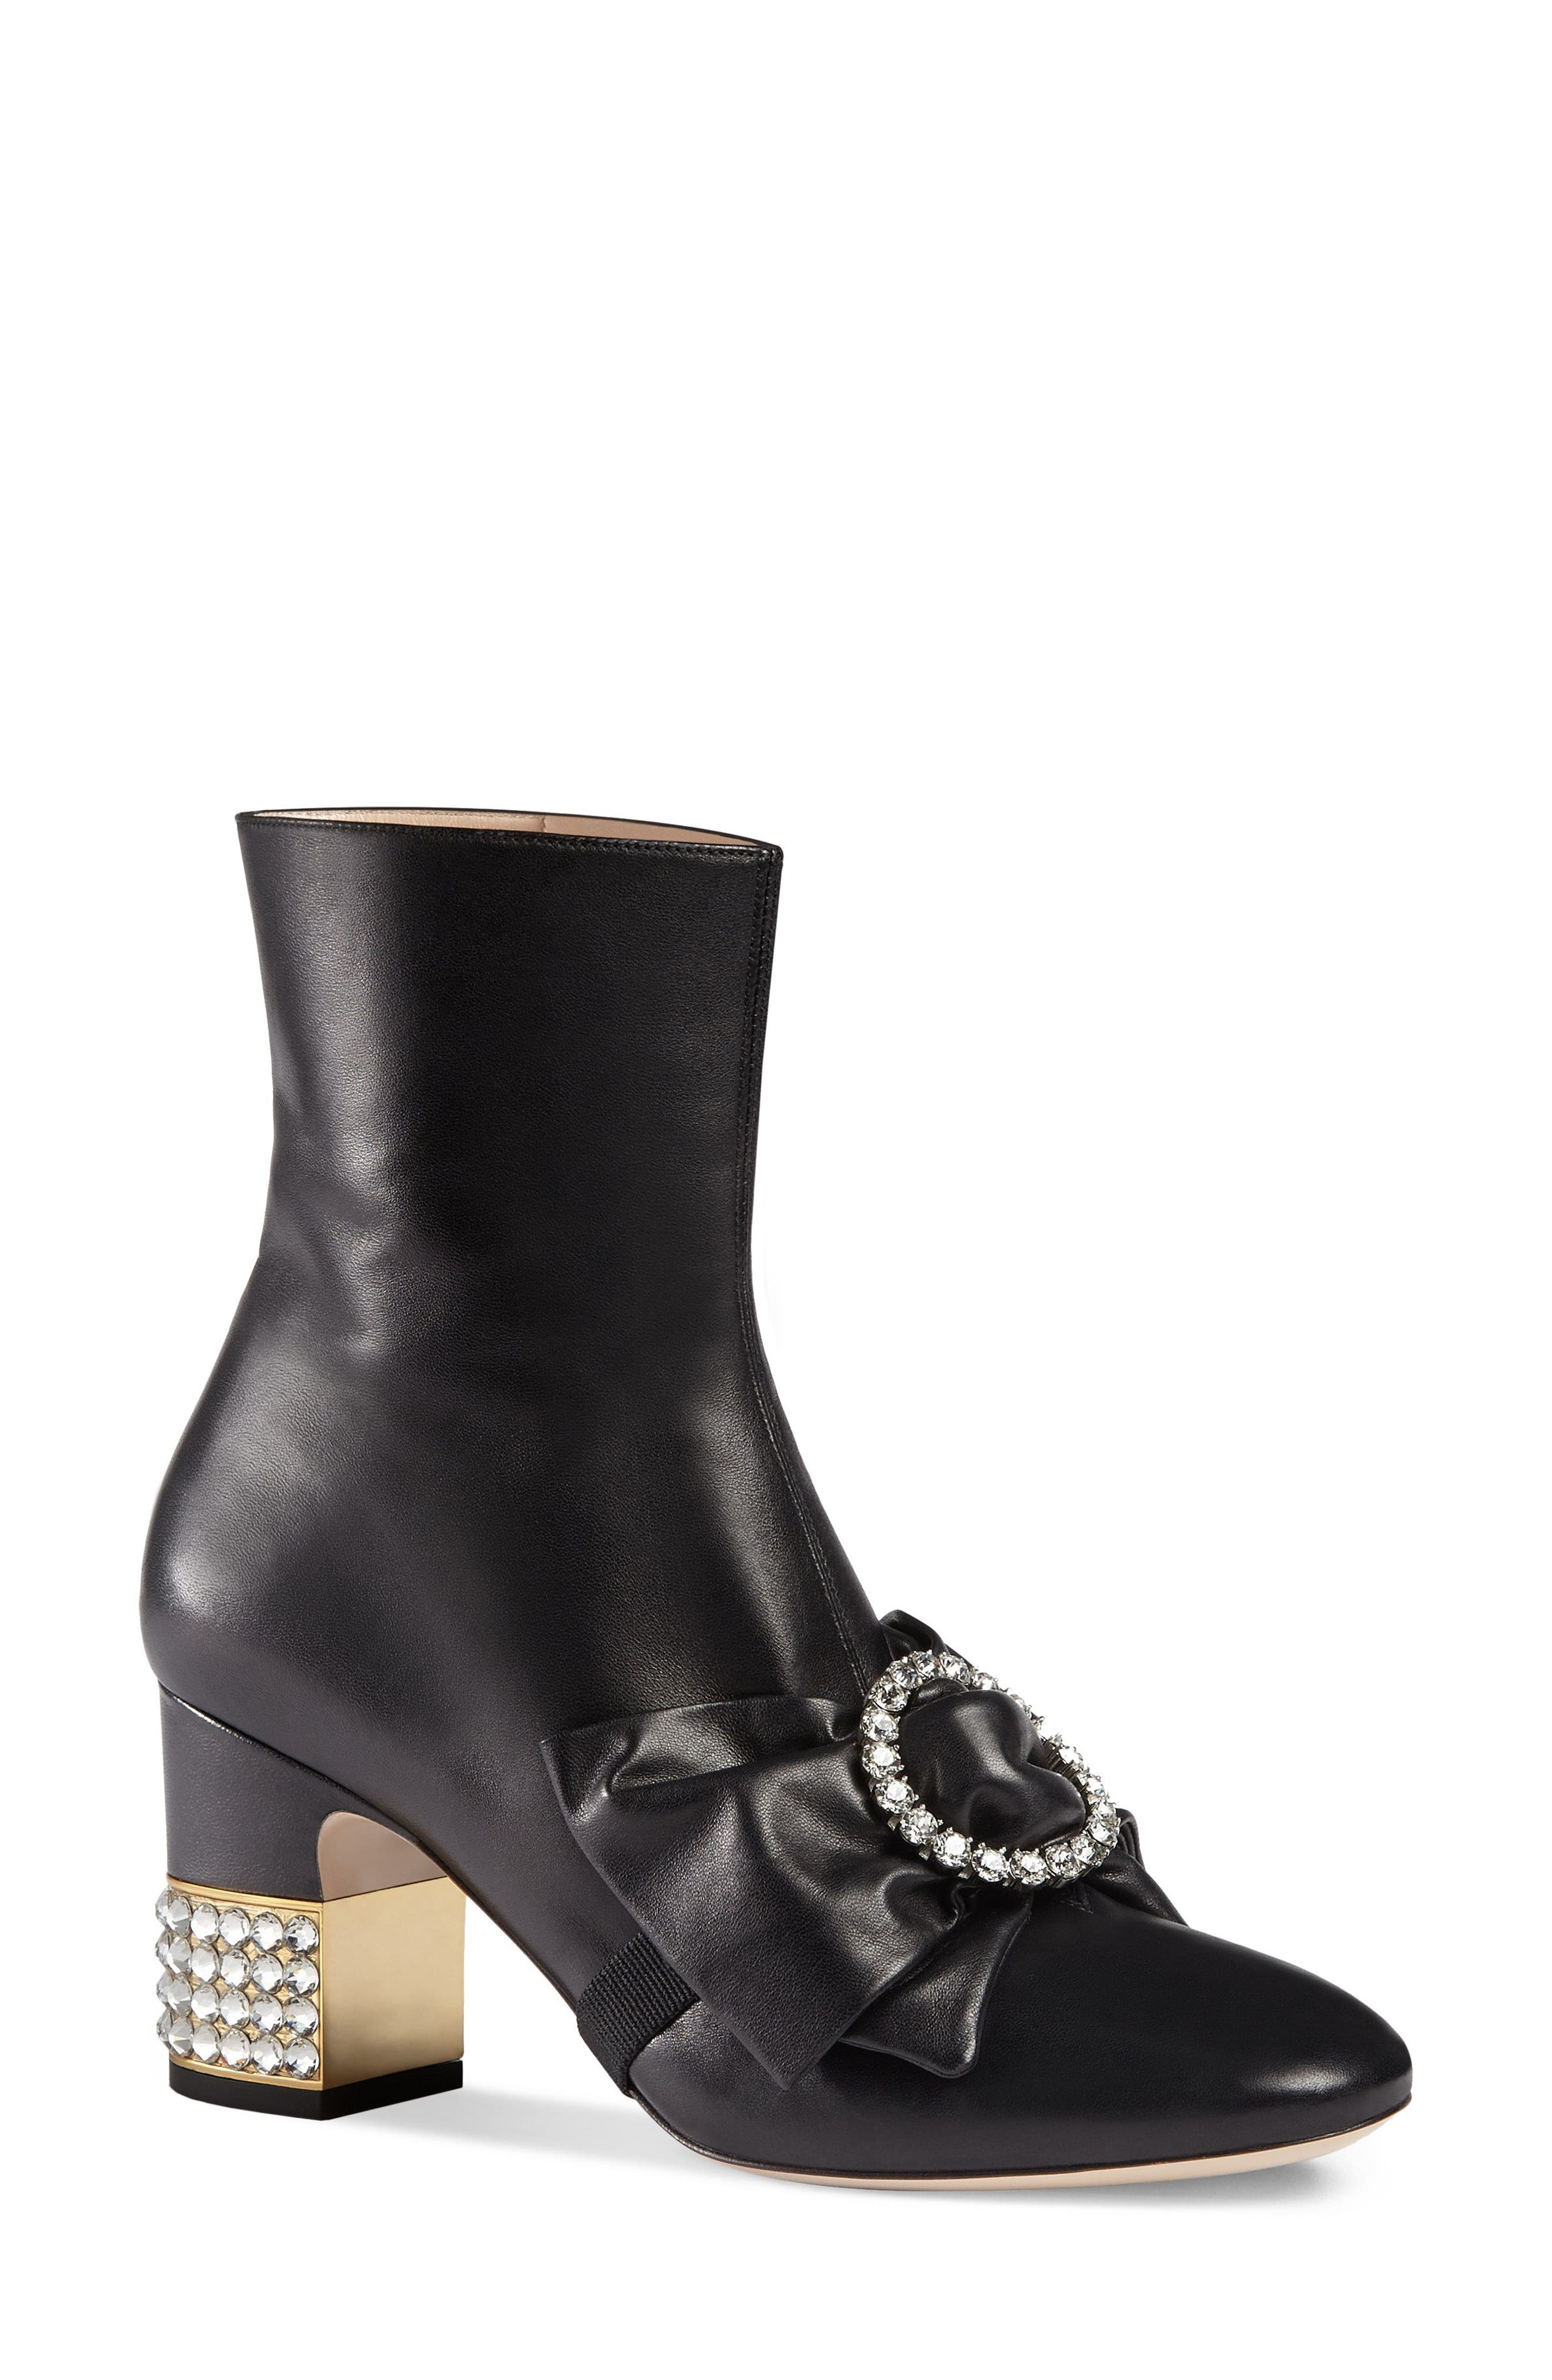 Main Image - Gucci Candy Bow Crystal Bootie (Women)